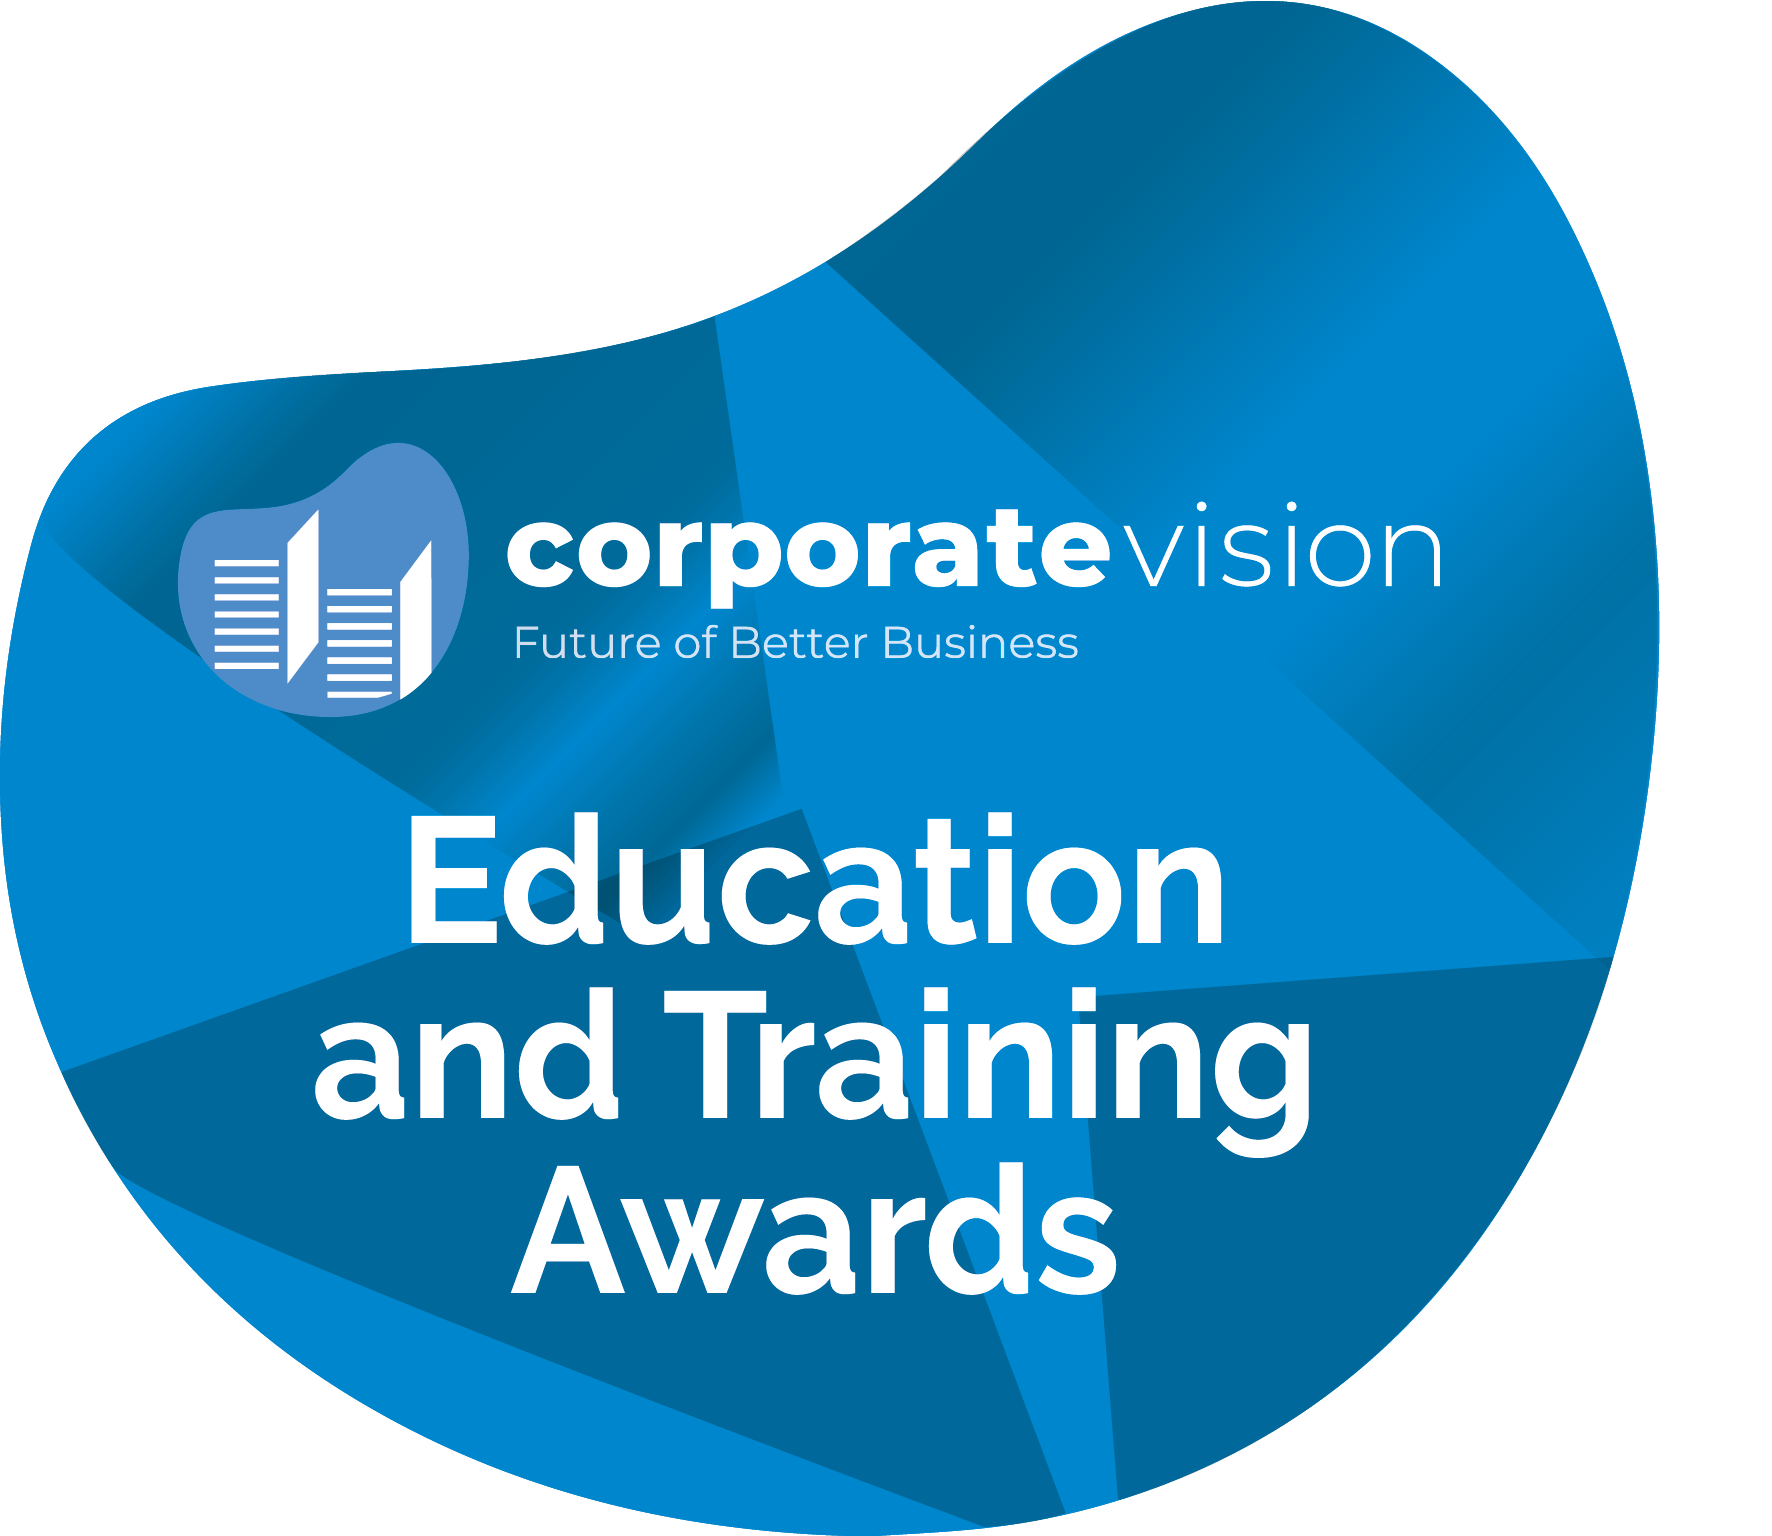 Education and Training Awards